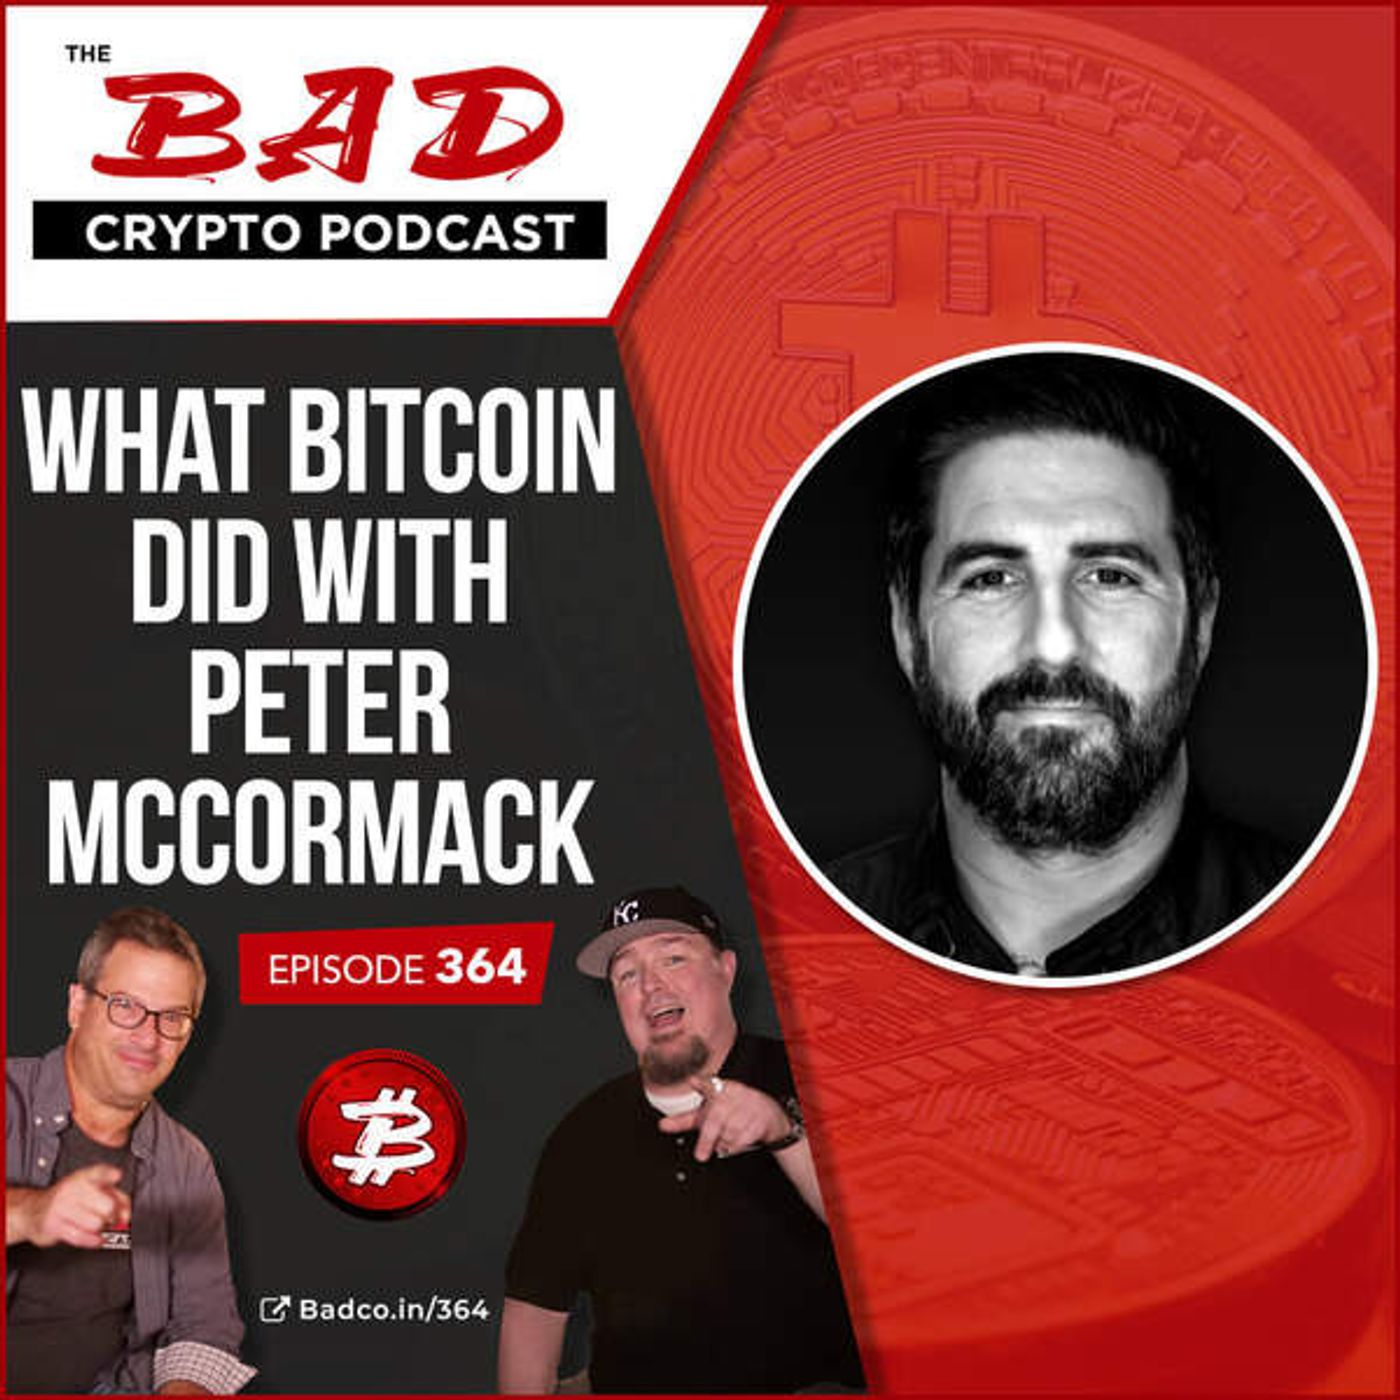 Heartland Newsfeed Podcast Network: The Bad Crypto Podcast (What Bitcoin Did with Peter McCormack)